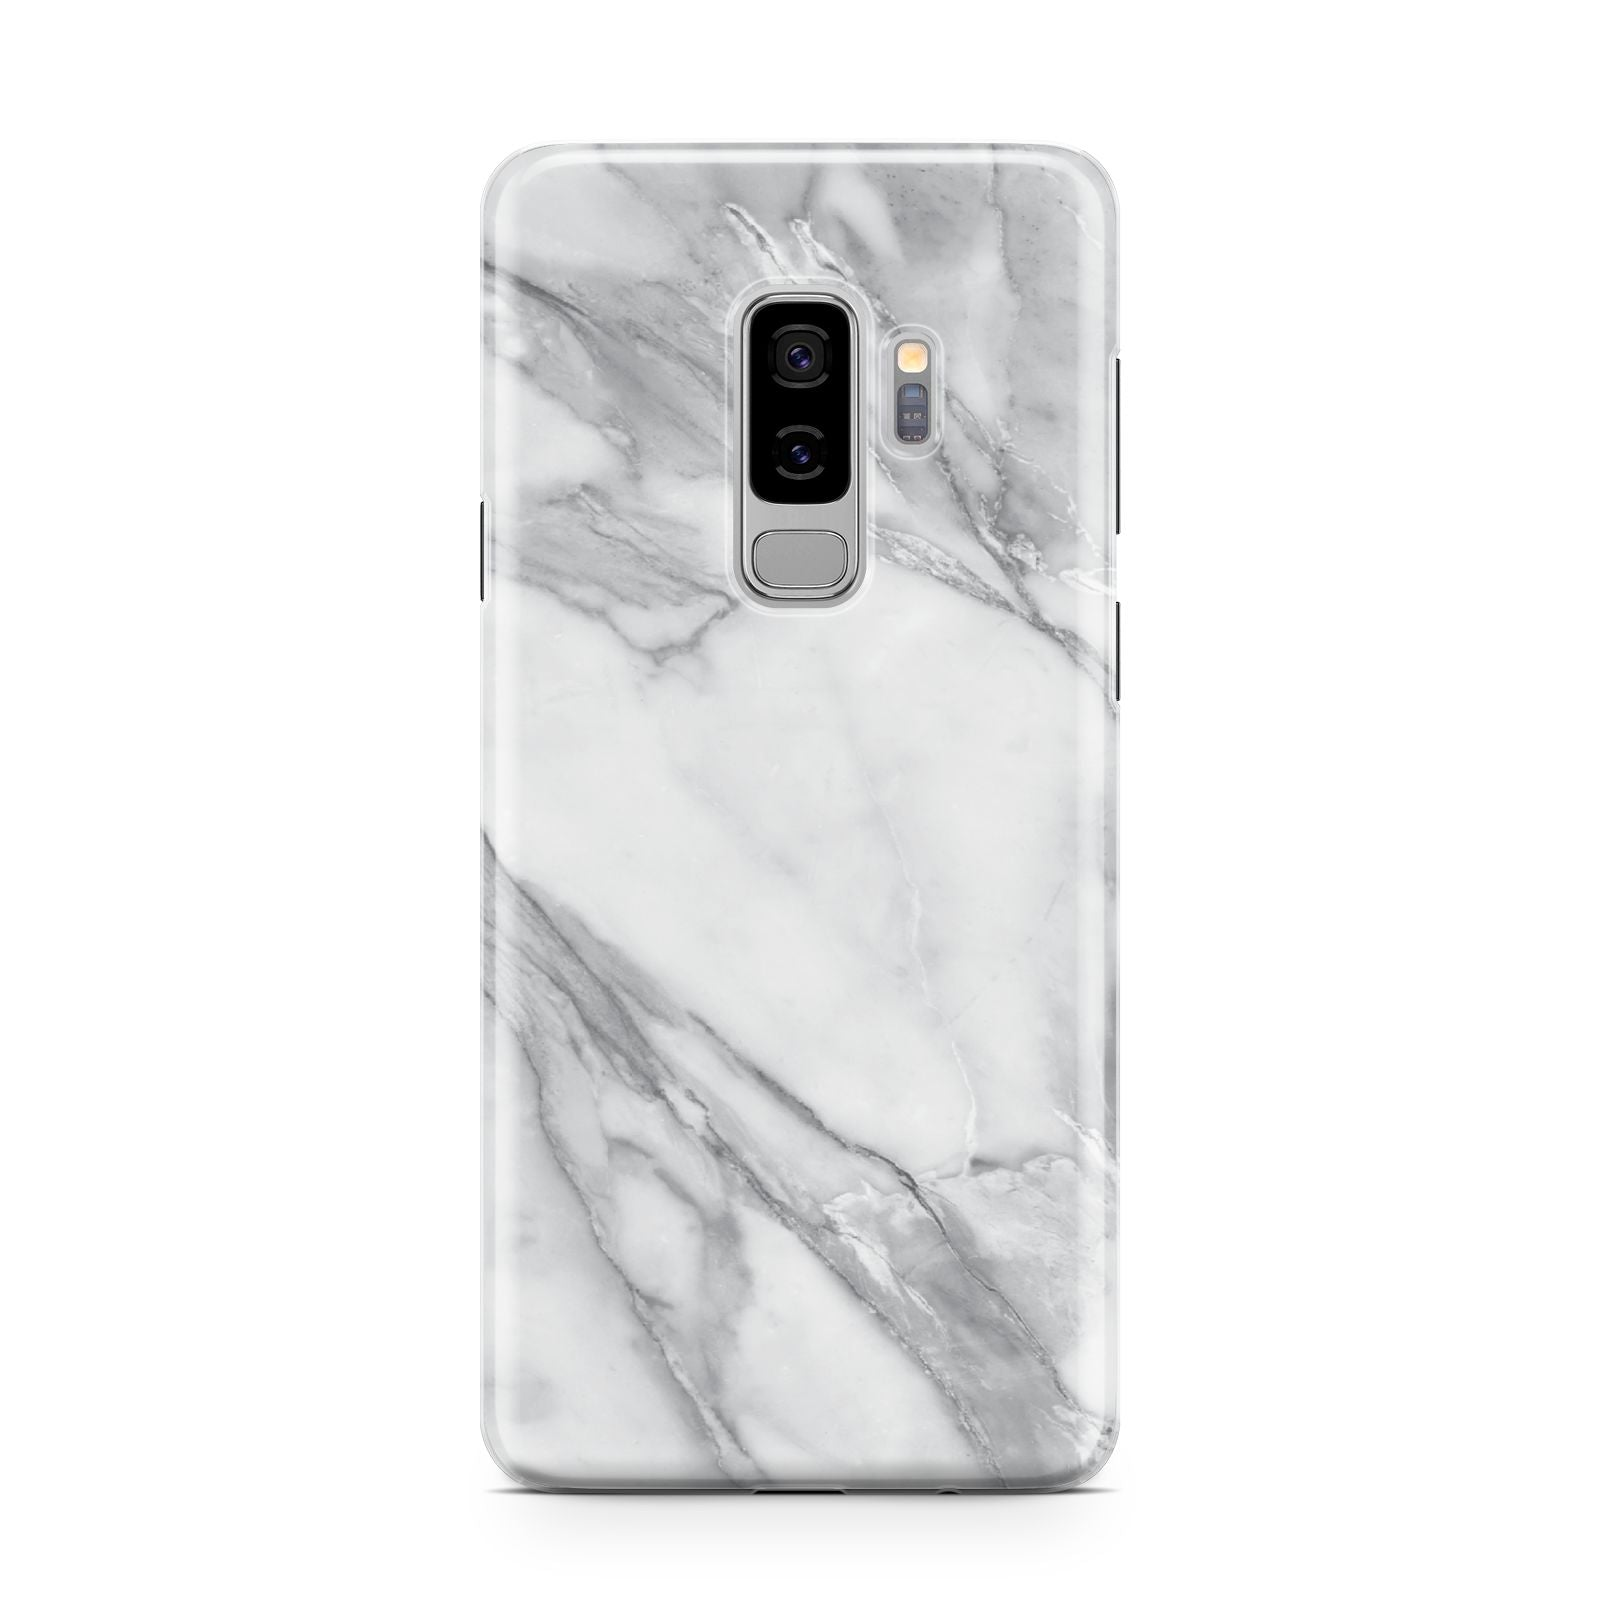 Faux Marble Effect White Grey Samsung Galaxy S9 Plus Case on Silver phone